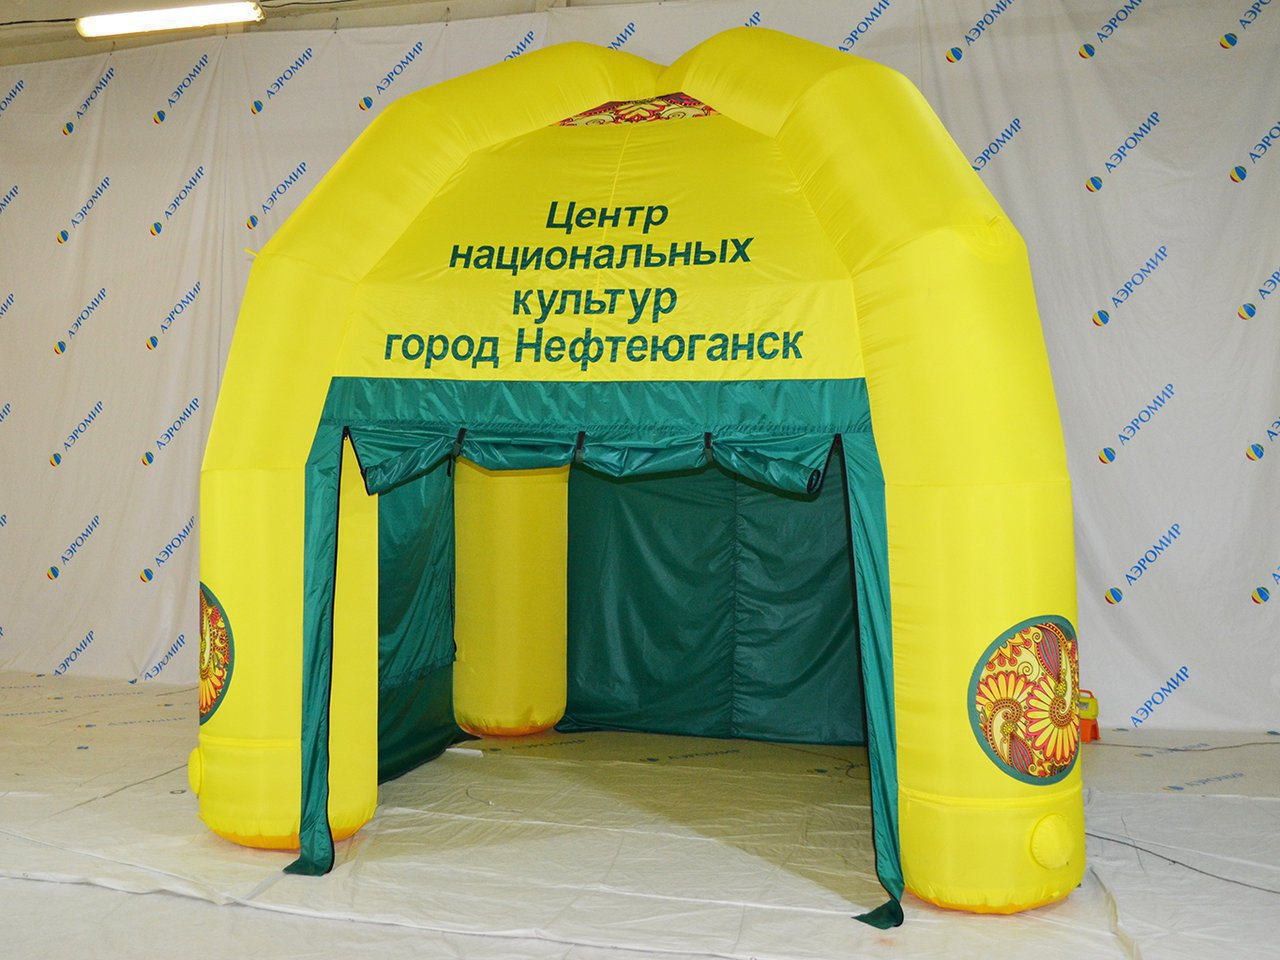 Four-support inflatable tent for the Center for National Cultures of Nefteyugansk.